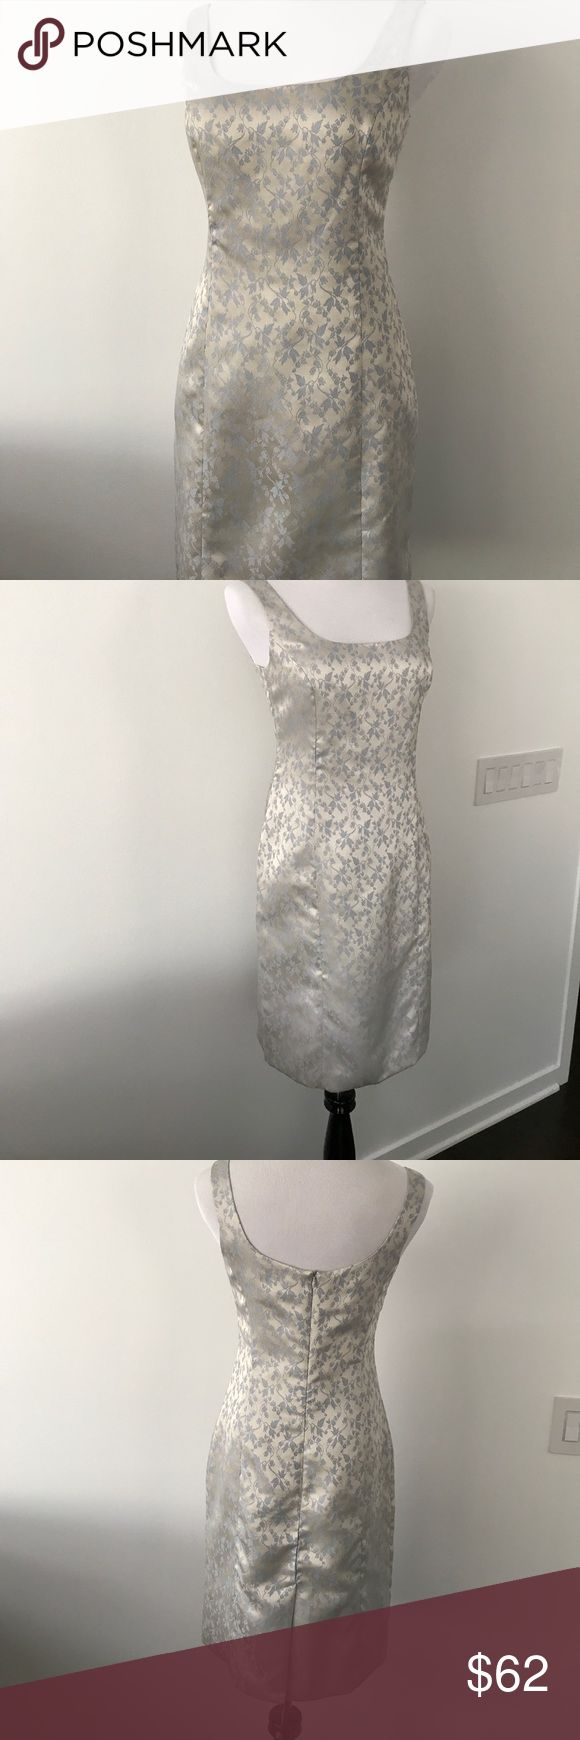 Isabel Ardee  dress size 6 Isabel Ardee dress size 6 exclusive for Neman Marcus great fit !! Isabel Ardee Dresses